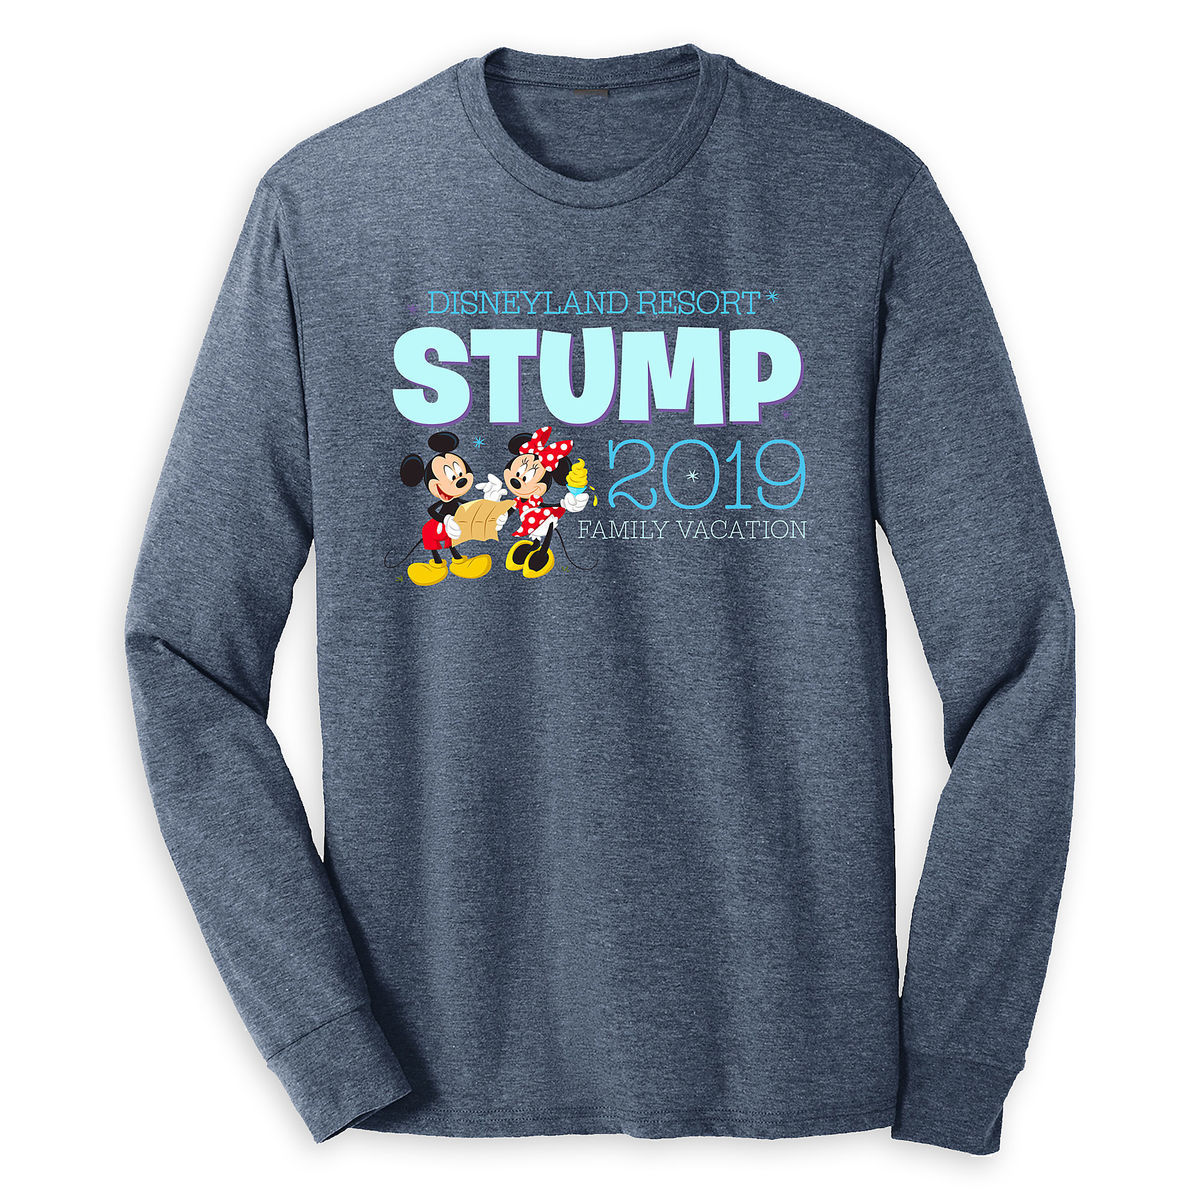 Mickey And Minnie Mouse Family Vacation Long Sleeve Shirt For Adults